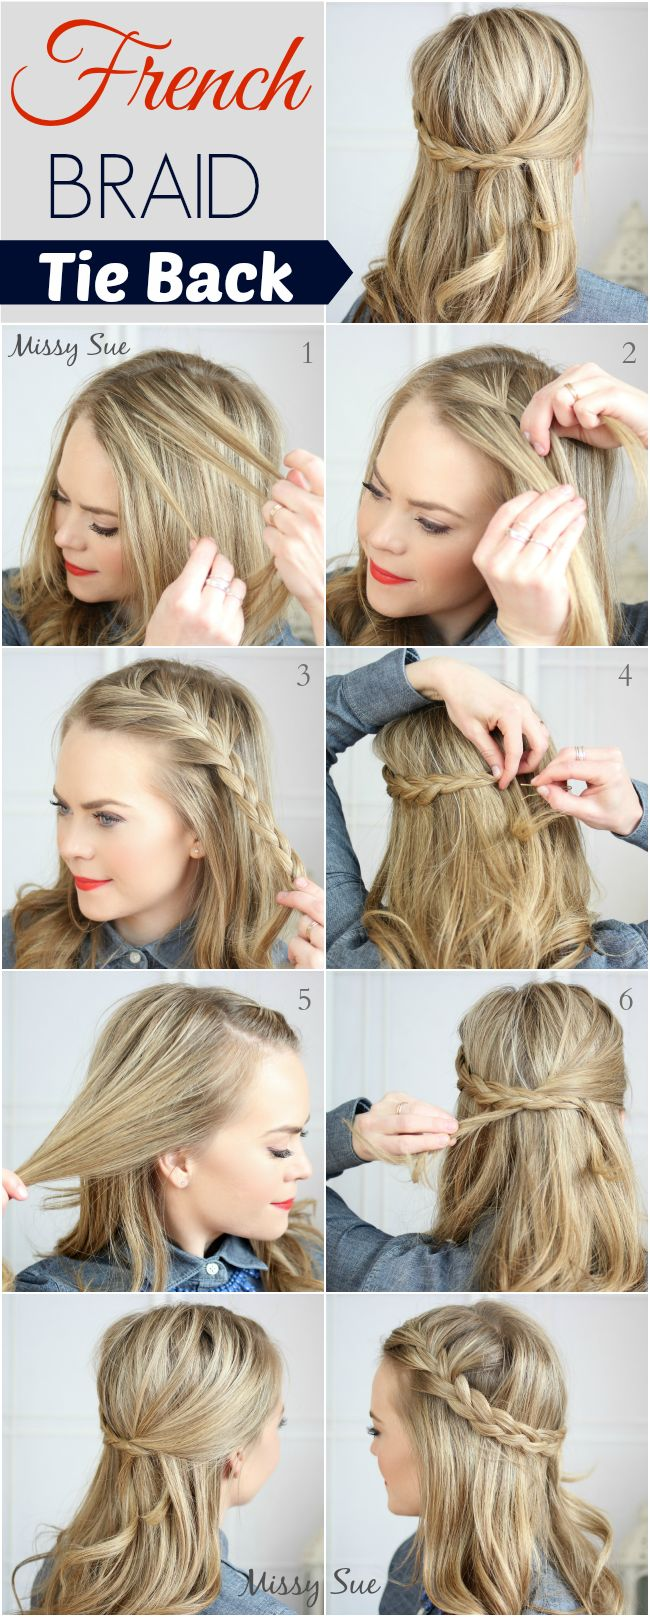 DIY French Braid Tie Back